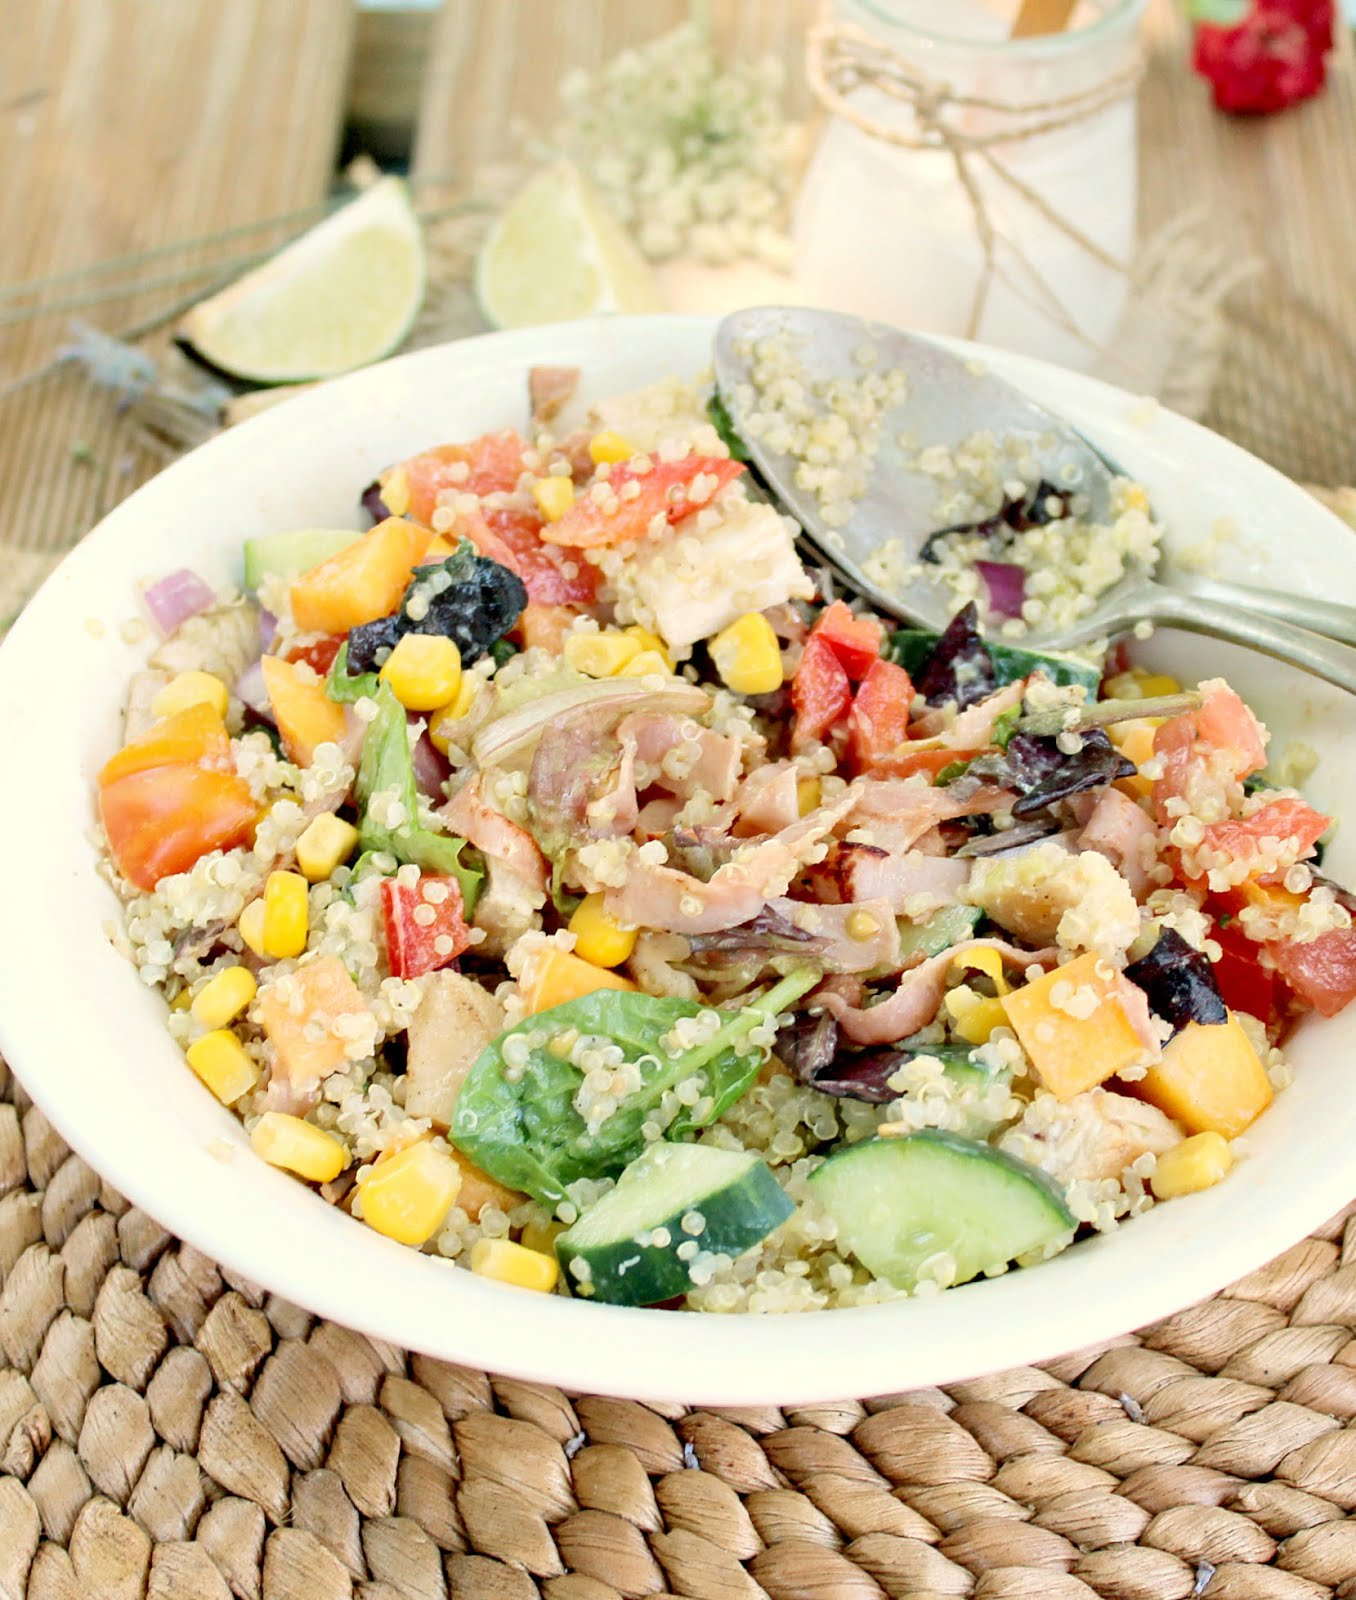 Grilled Chicken Quinoa Rainbow Salad with Lime Avocado Dressing - the perfect low cal, refreshing summer meal!